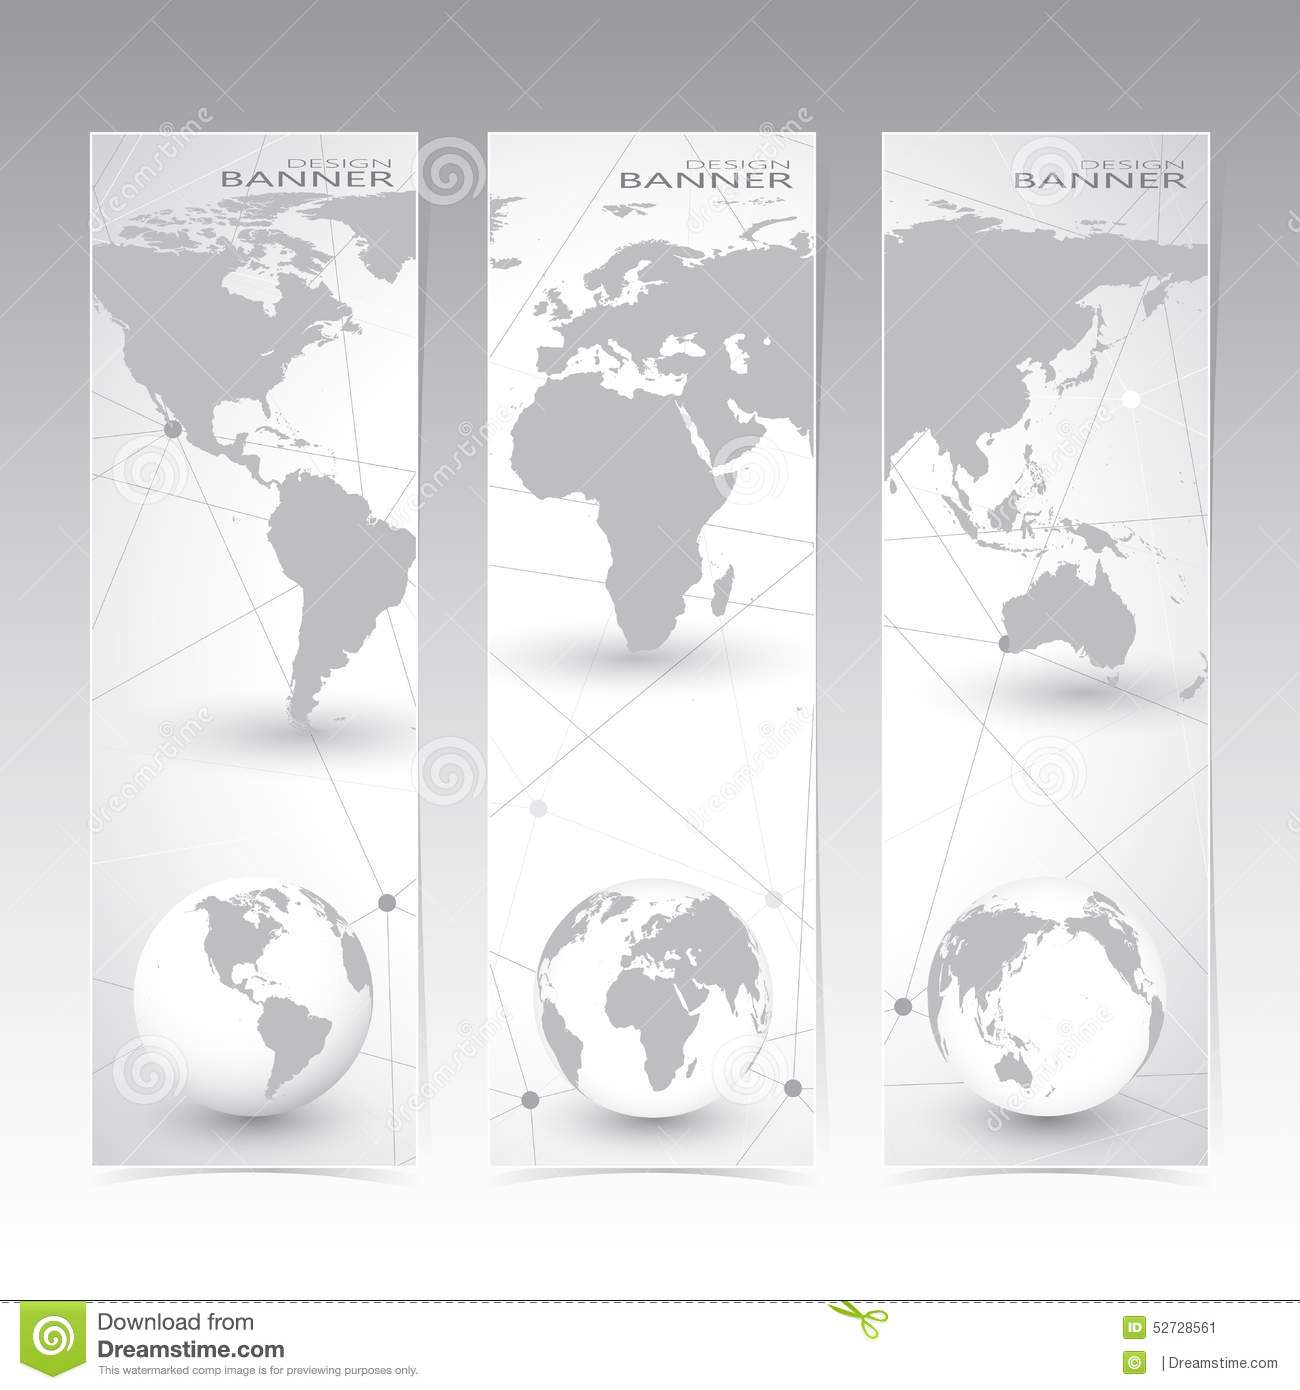 Collection vertical banner design world map and stock vector collection vertical banner design world map and gumiabroncs Choice Image